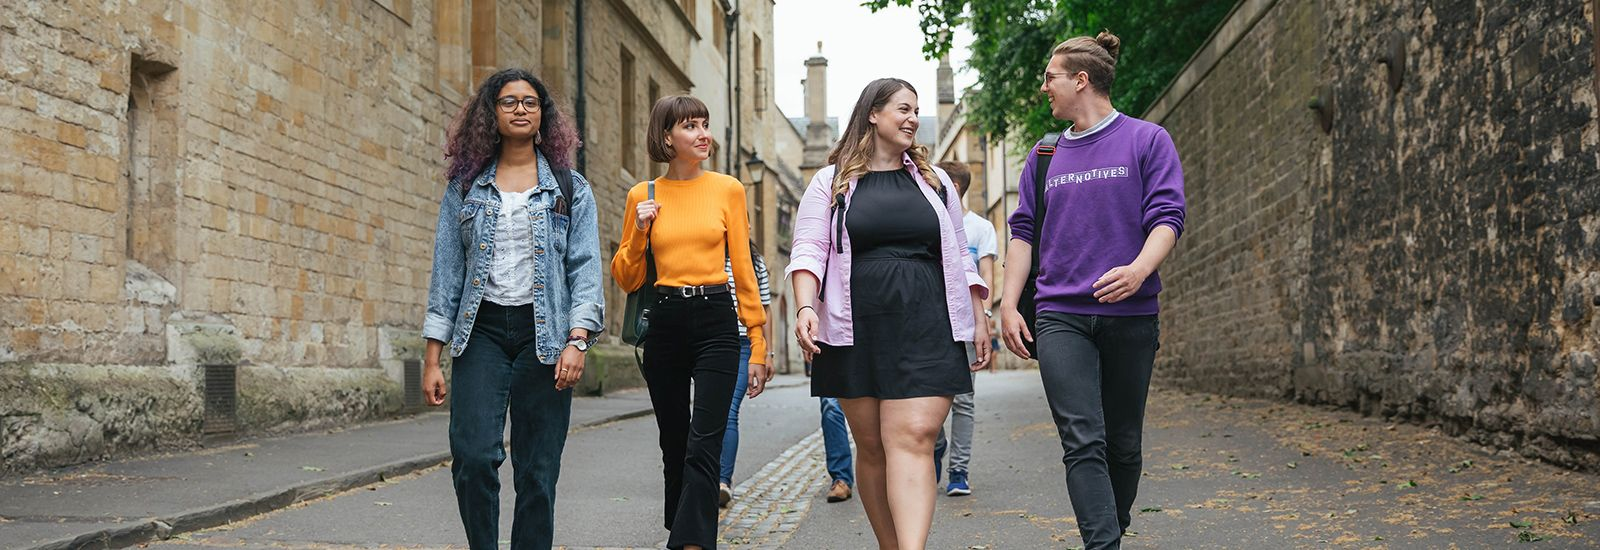 Four students walking together